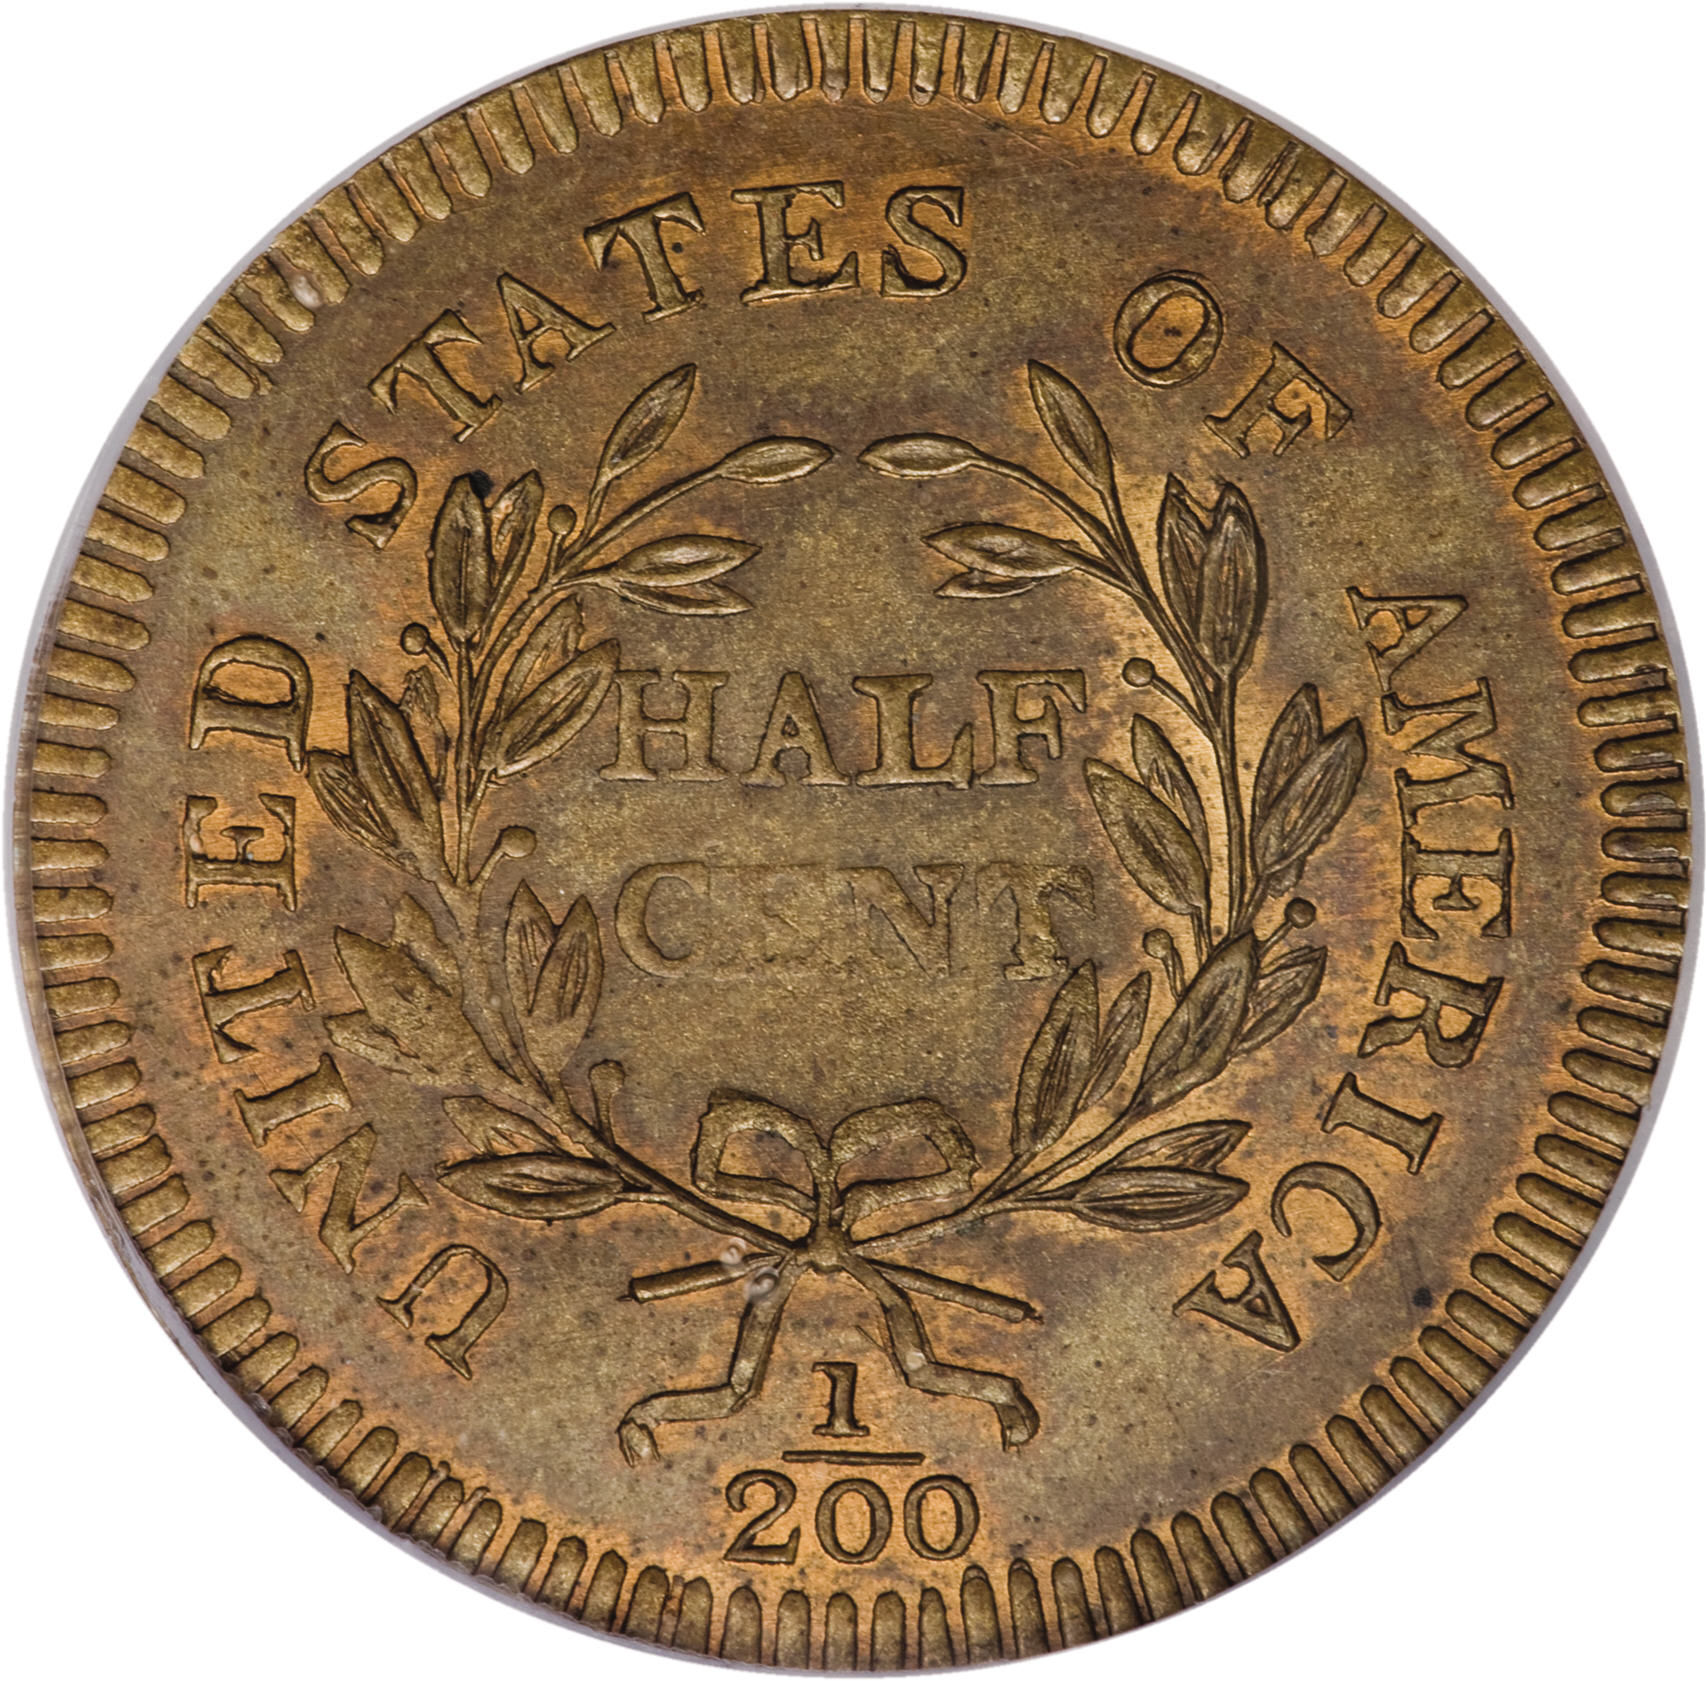 PCGS MS-66 brown 1796 Edwards copy half cent, from Heritage Signature Auction at 2008 Baltimore ANA show. Reverse is shown here.